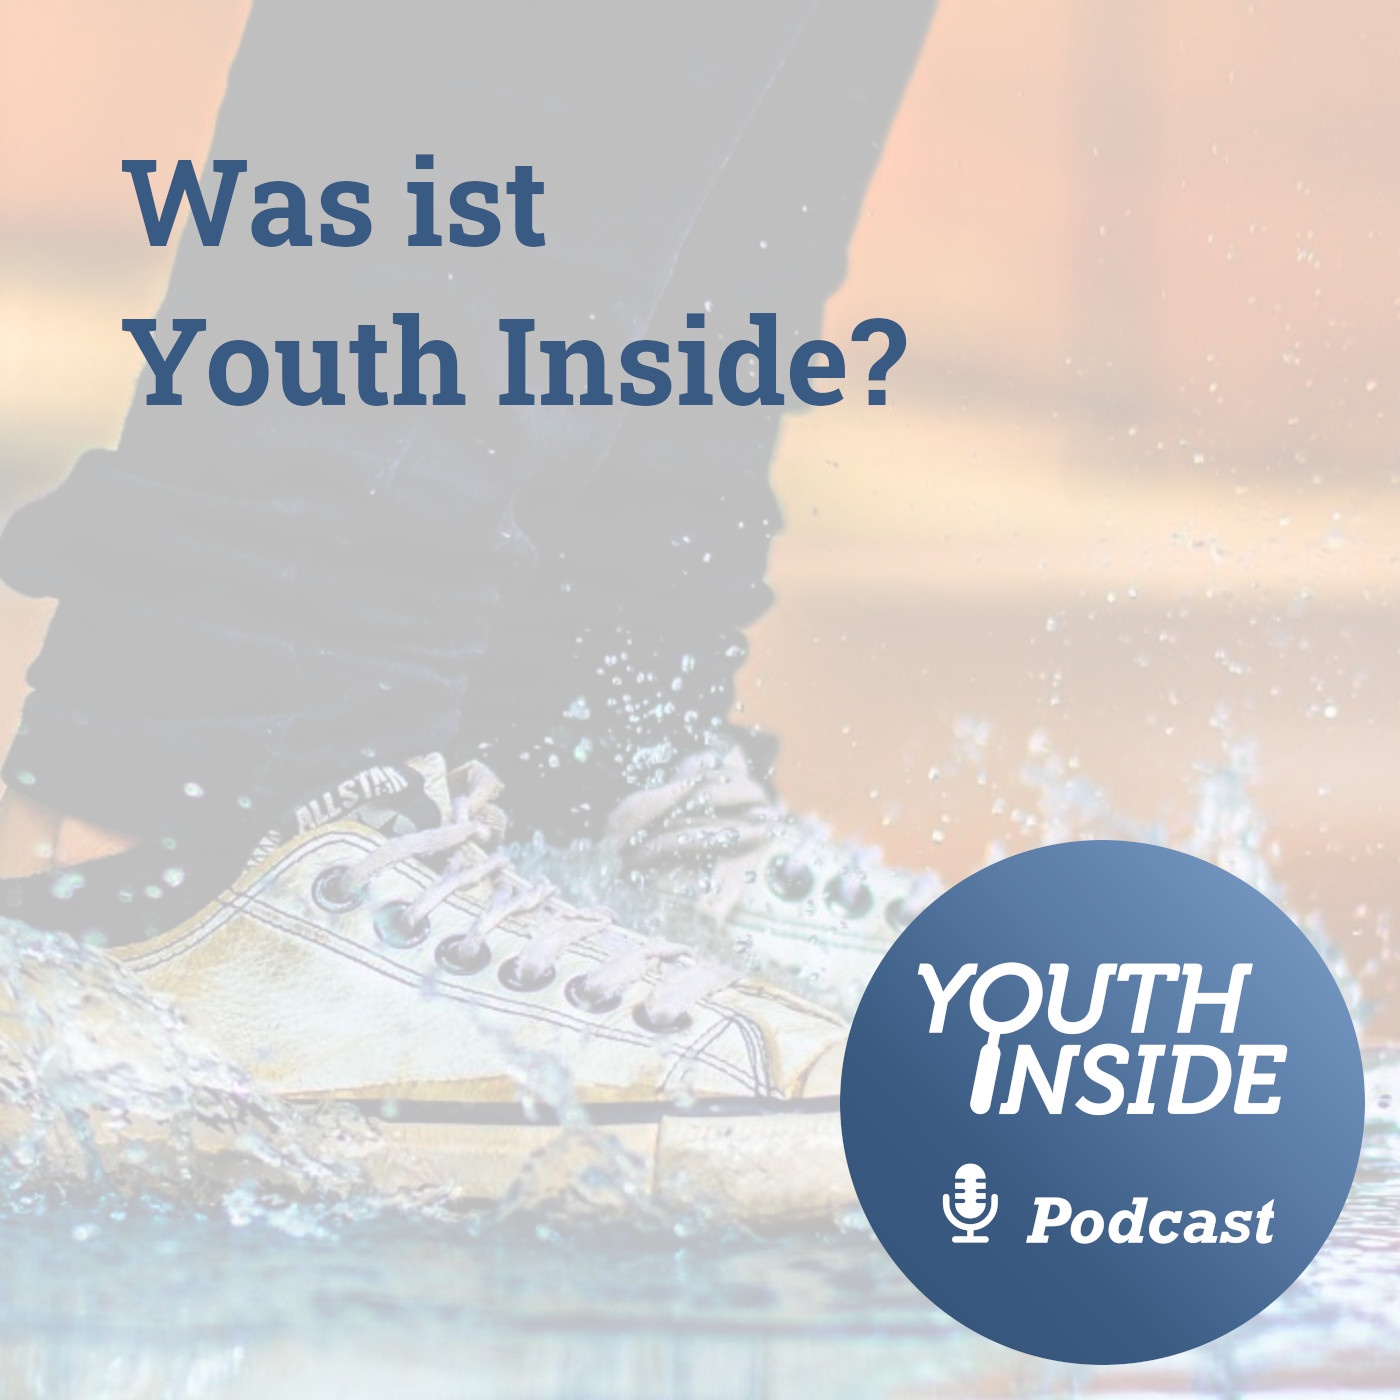 Was ist Youth Inside?